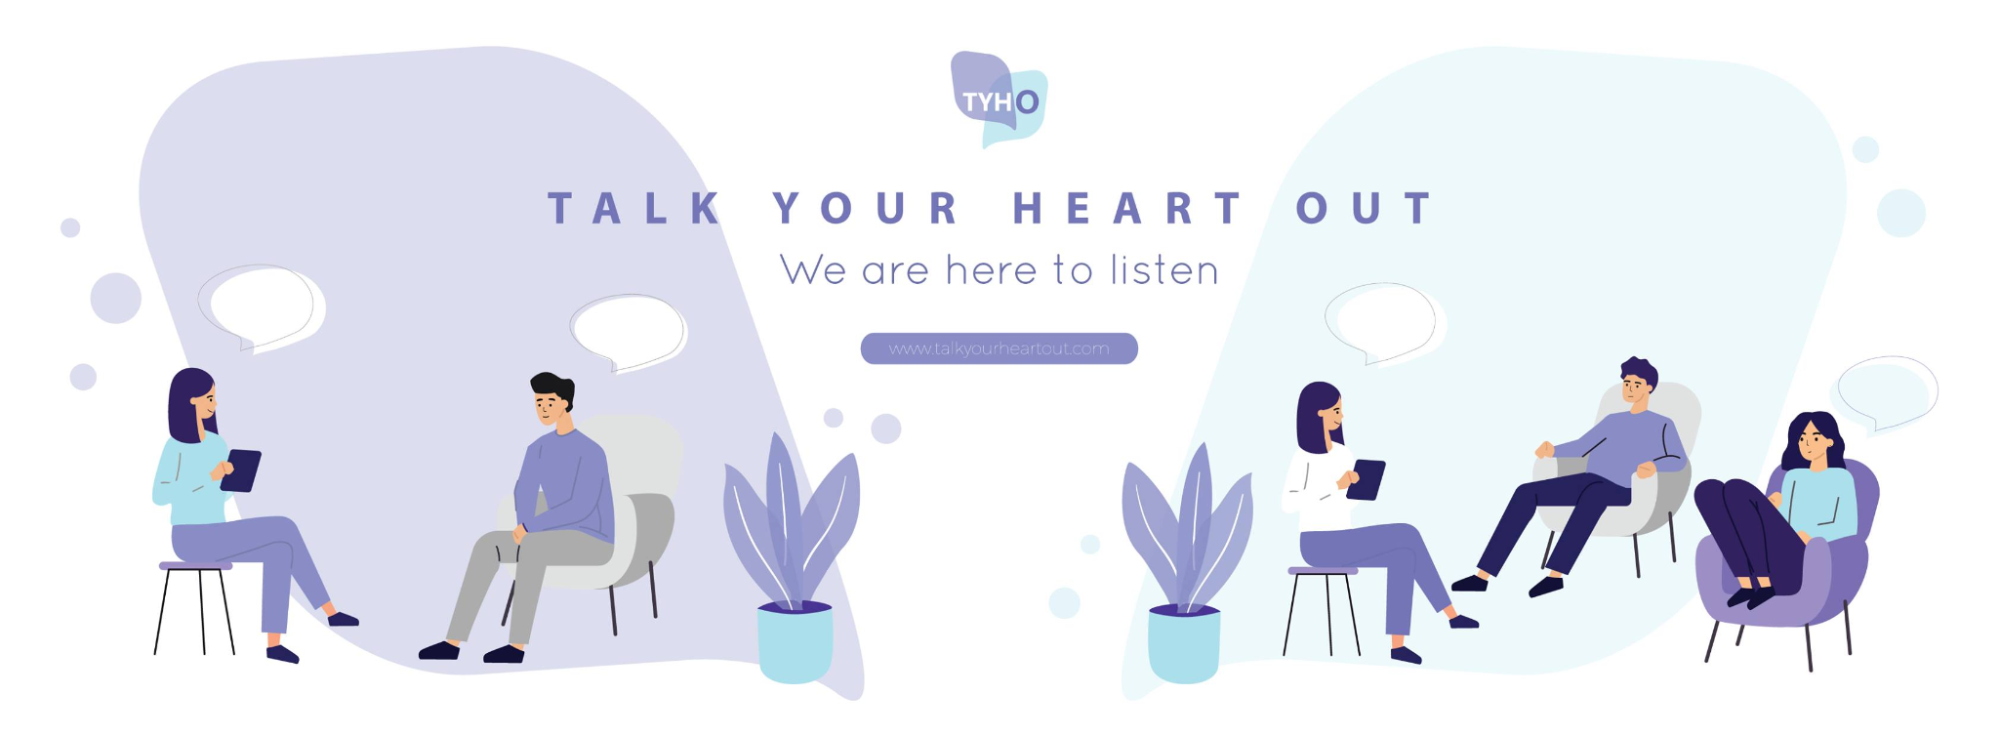 talk your heart out